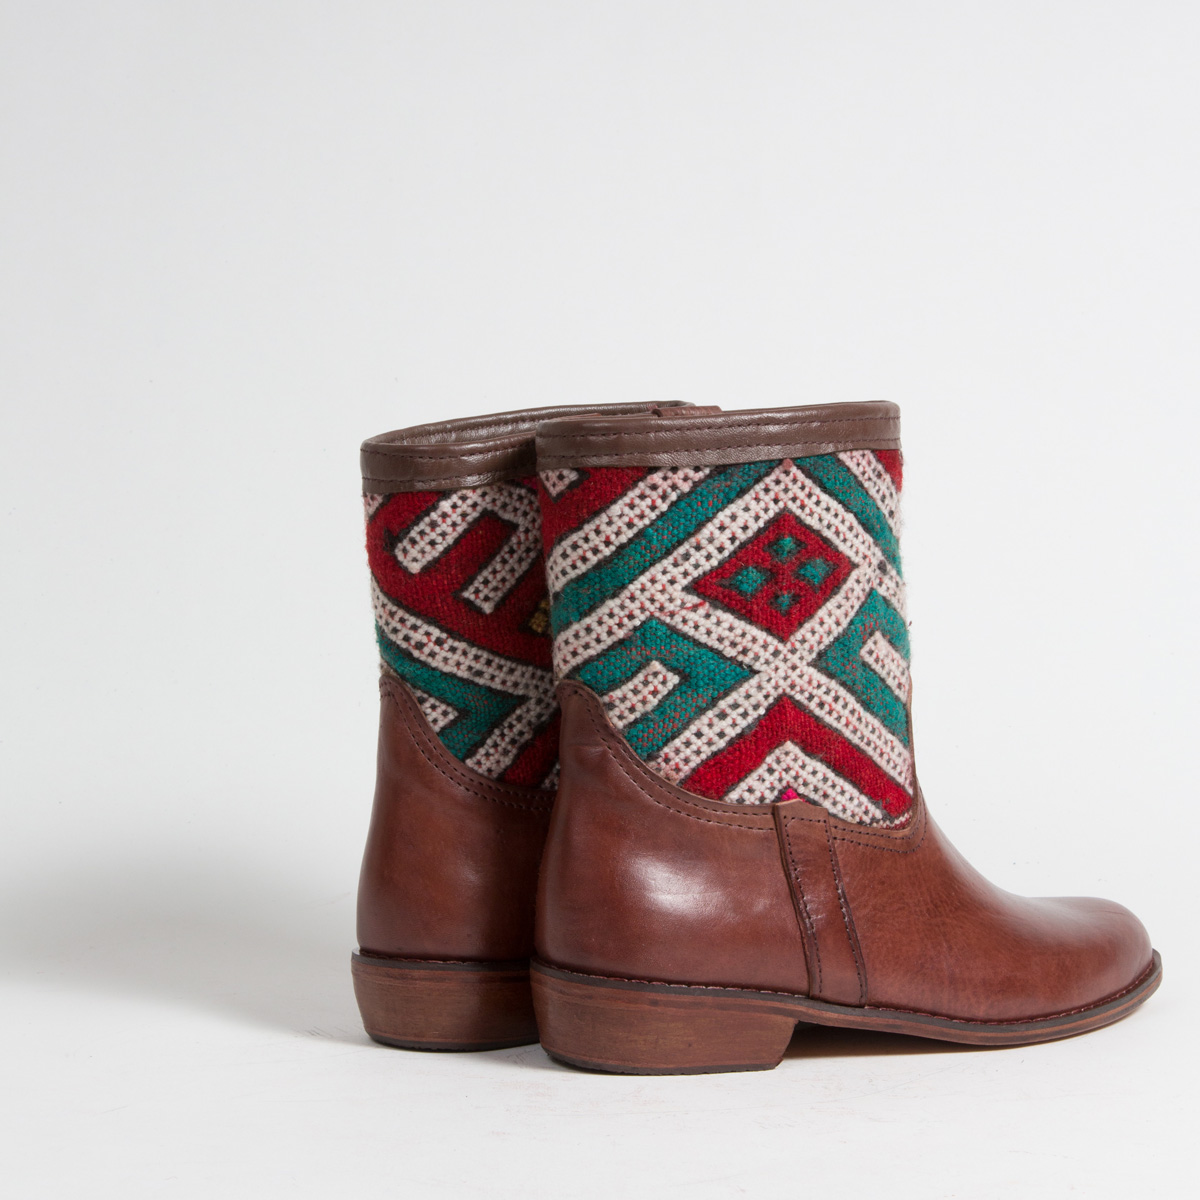 Bottines Kilim cuir mababouche artisanales (Réf. CB4-40)